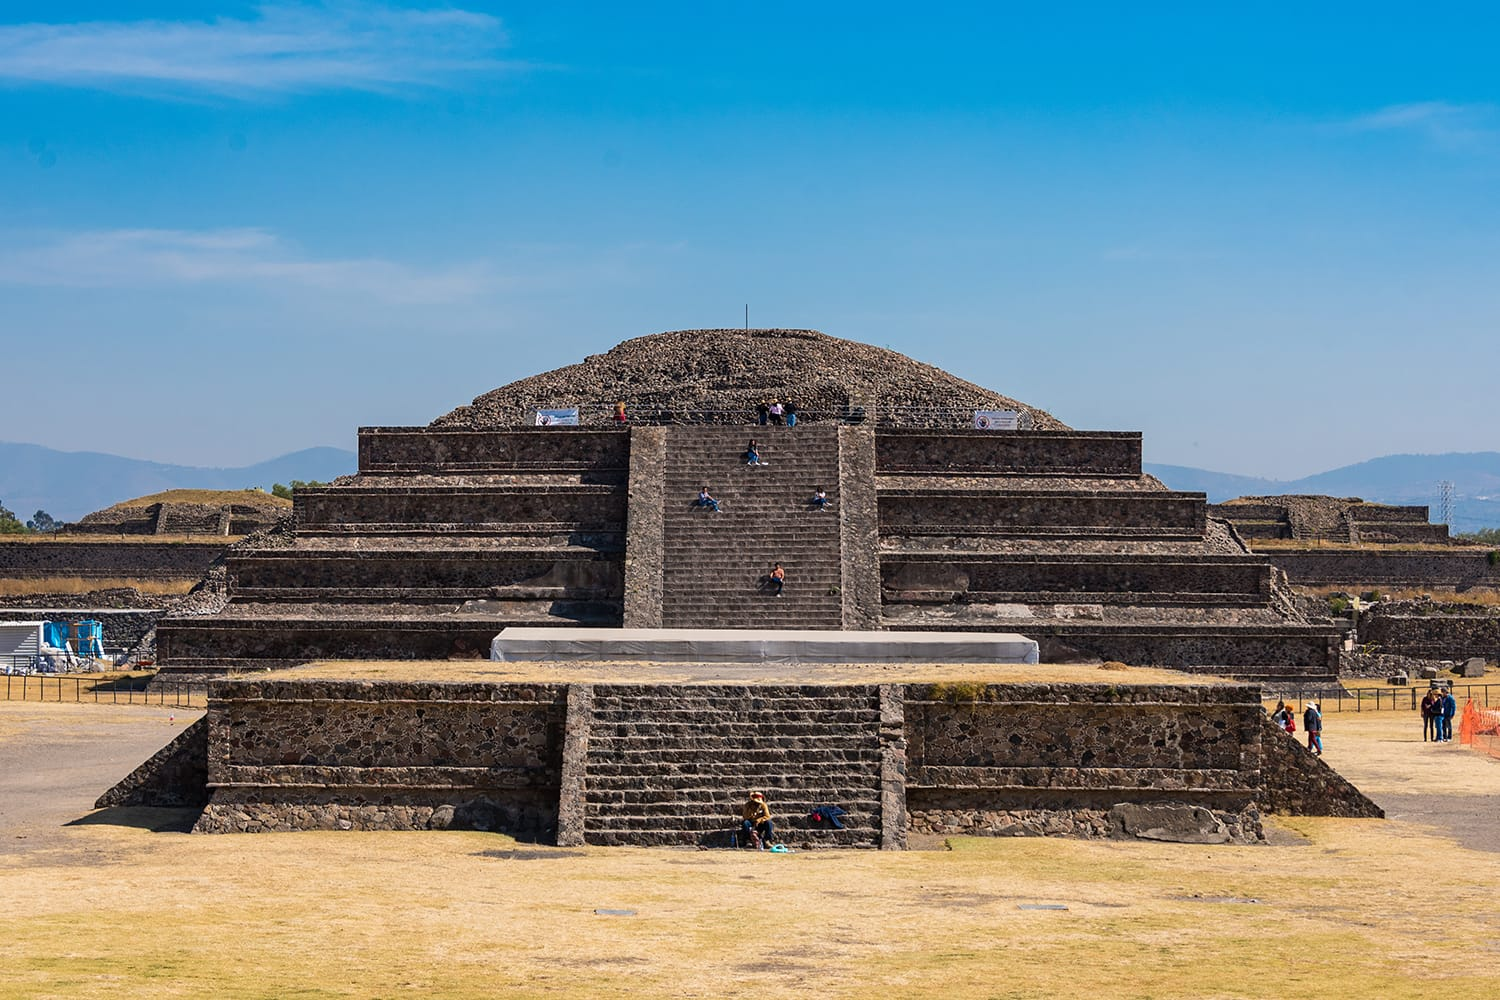 Temple of Quetzalcoatl at Teotihuacan, near Mexico City in Mexico